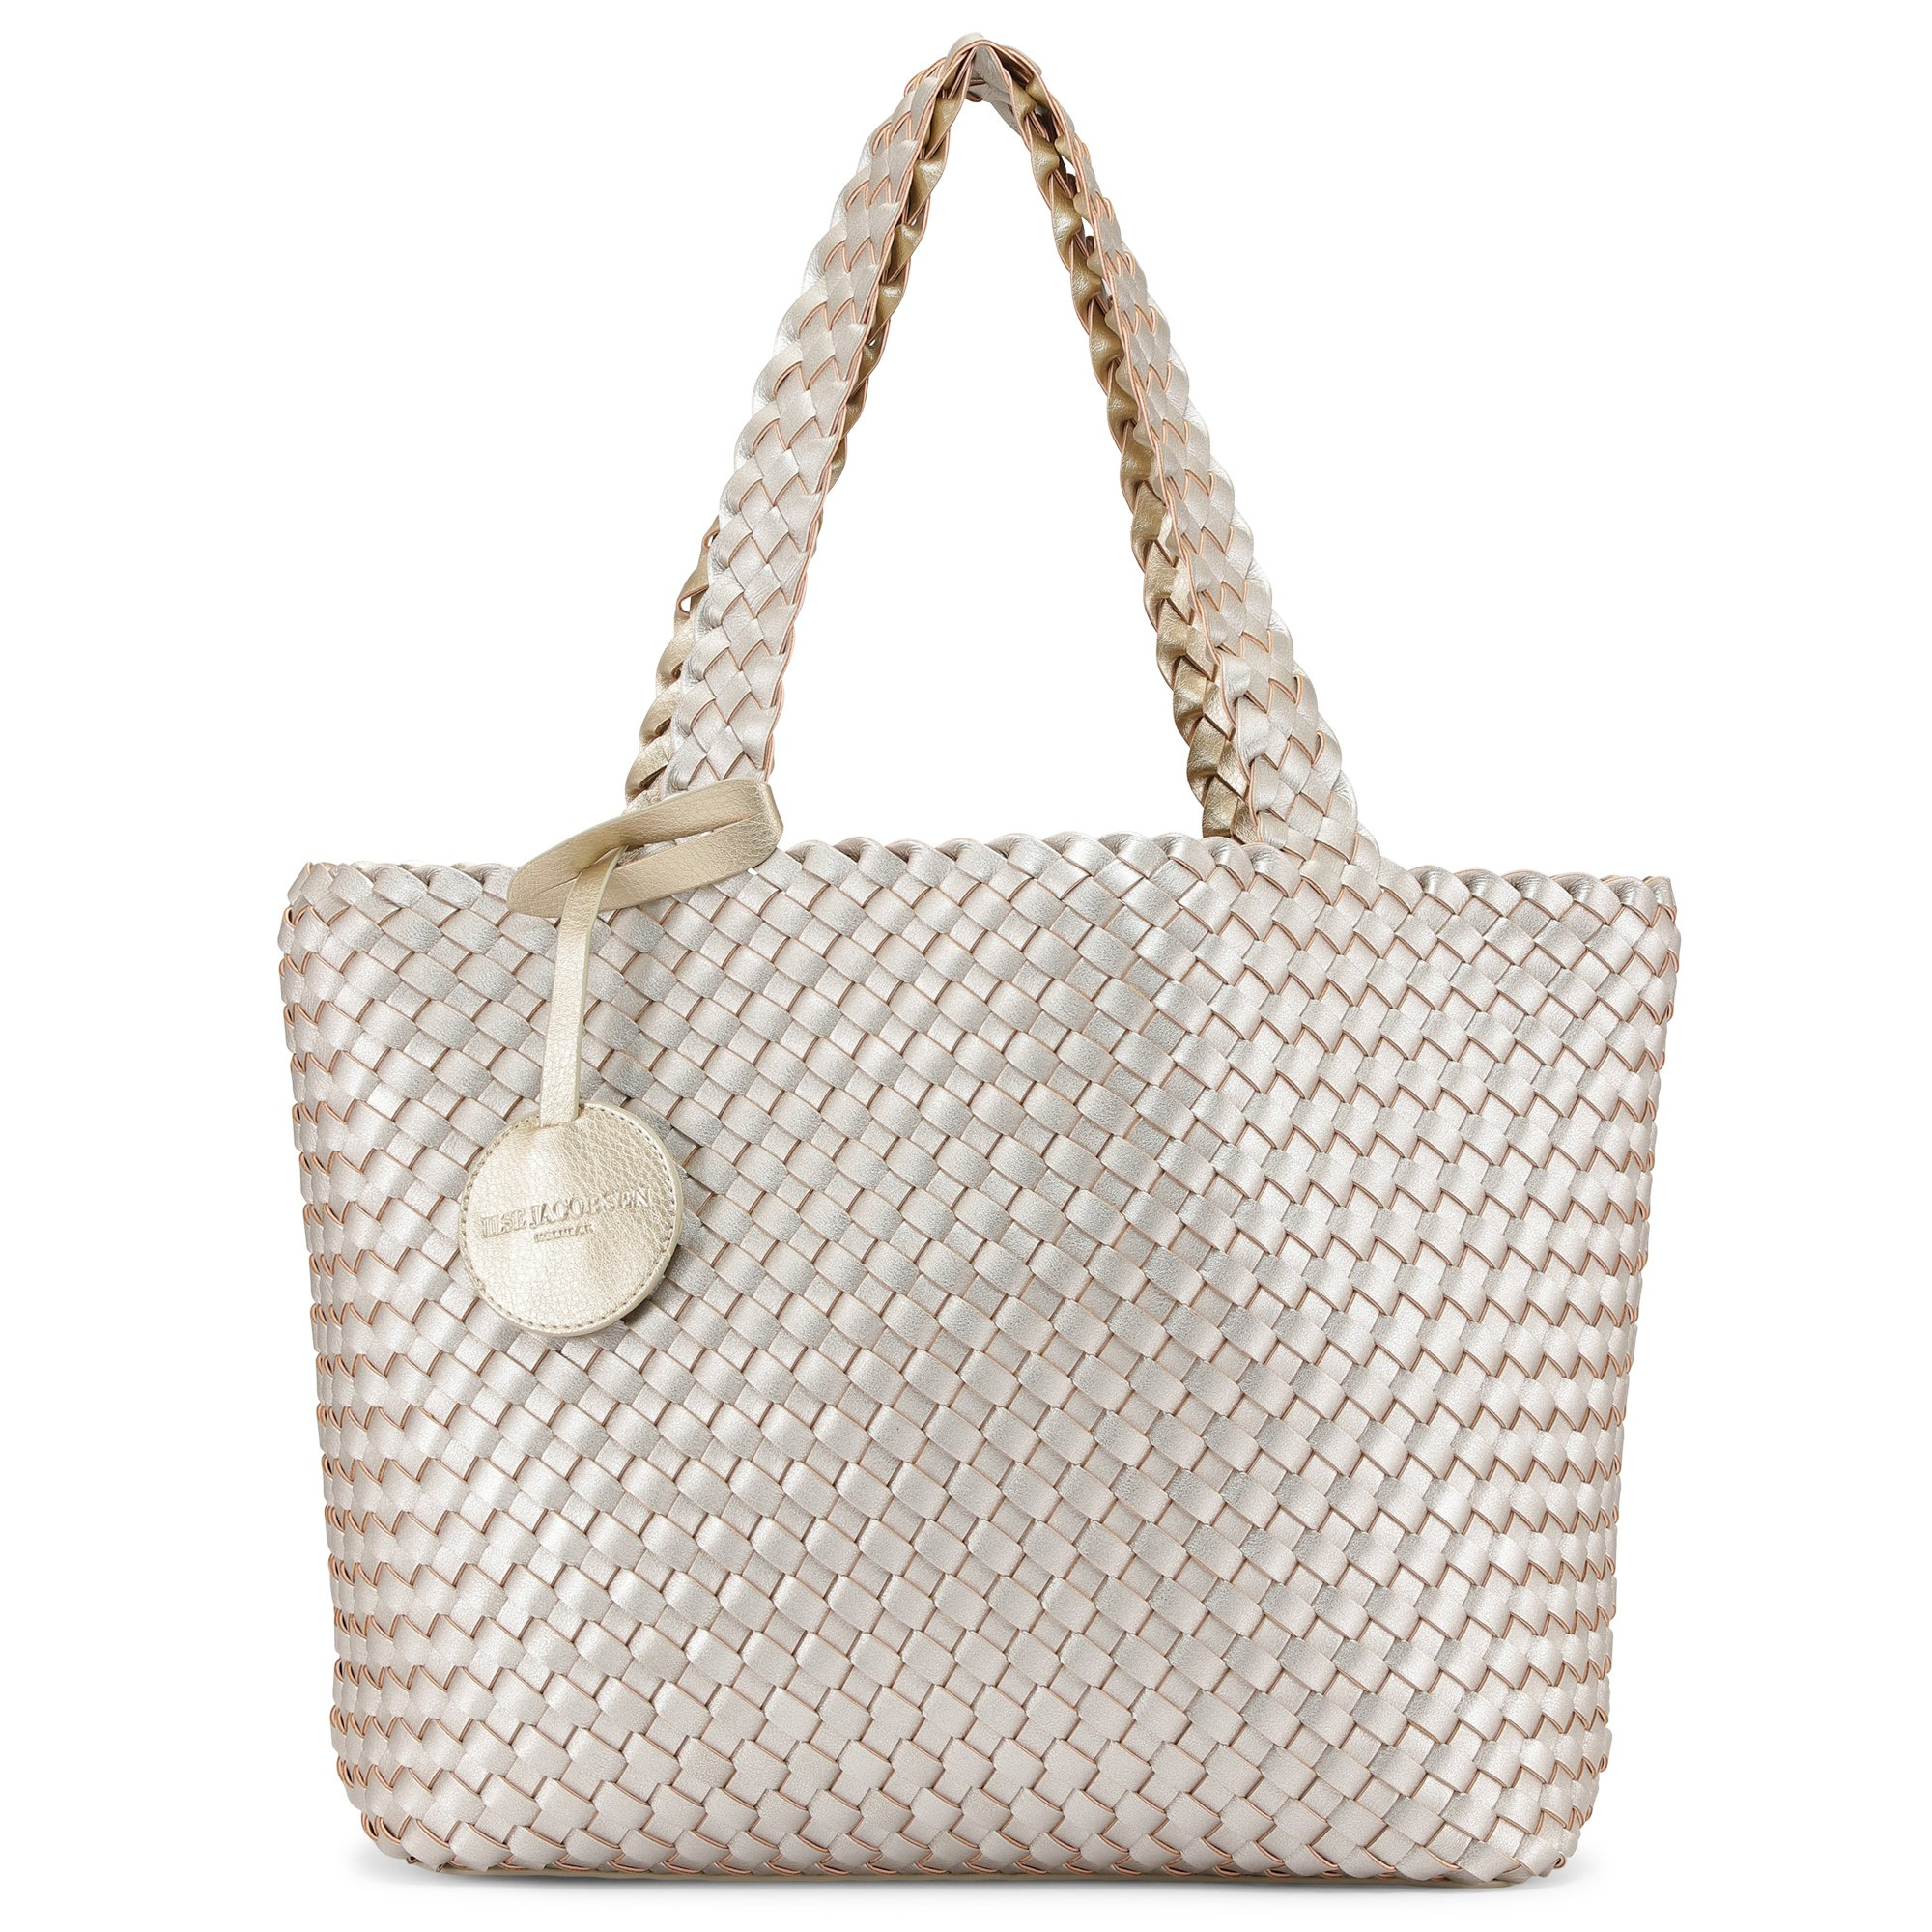 Ilse Jacobsen Bag08 780710 Platin gl